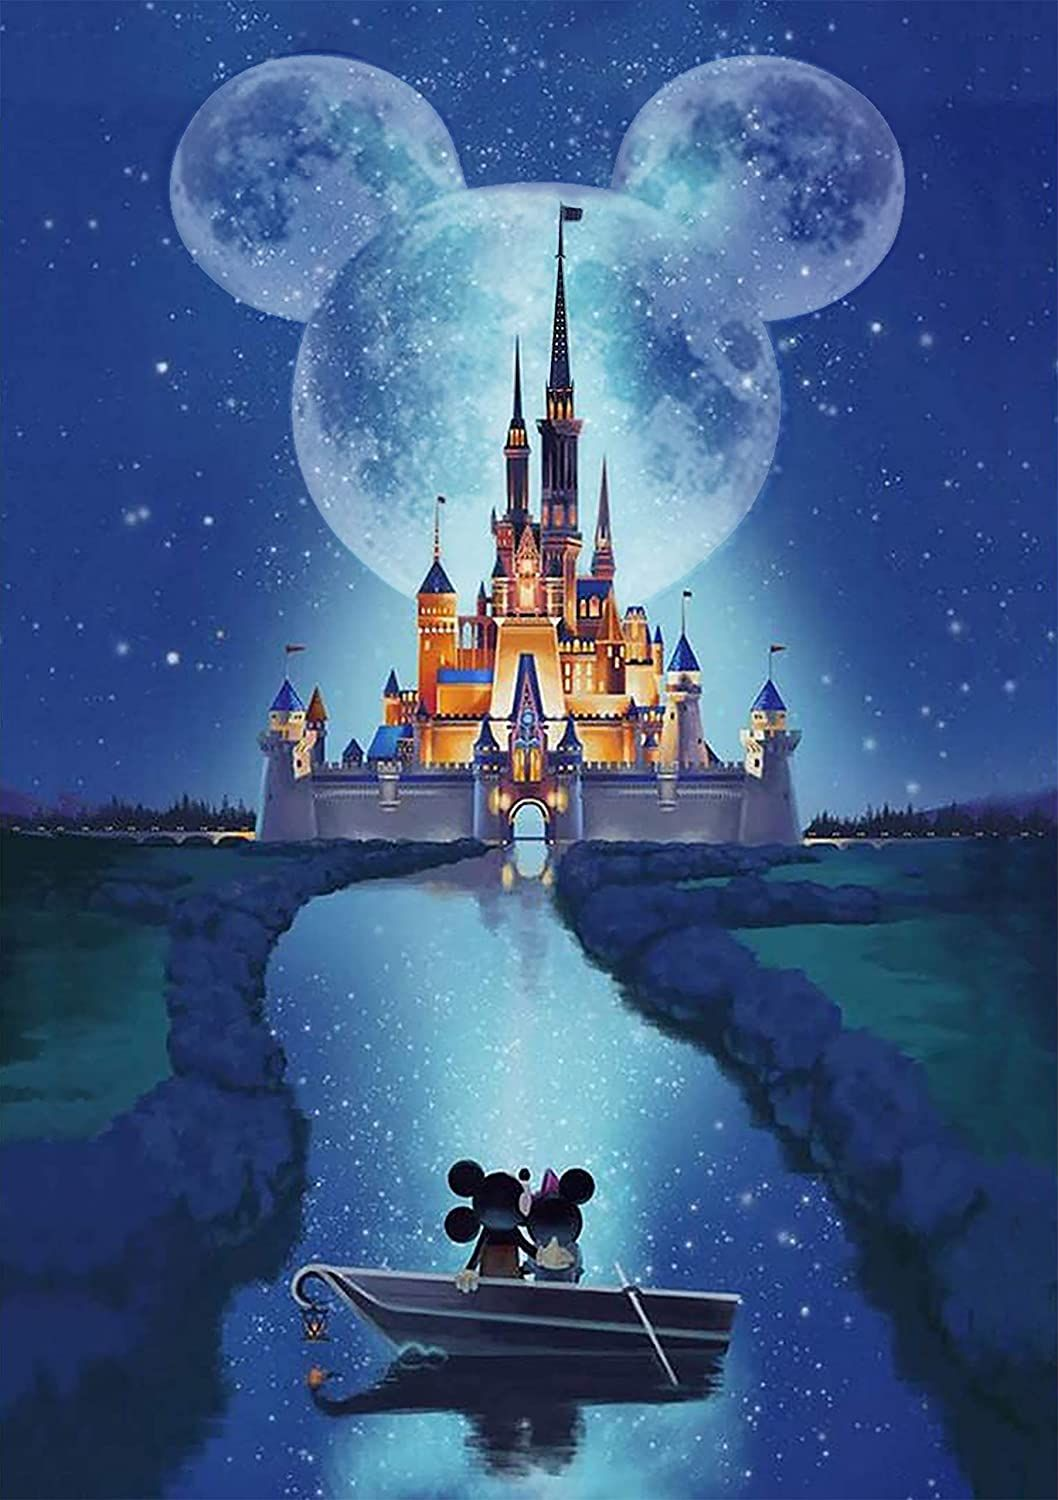 DIY 5d Diamond Painting Arts, Painting by Number Kits, Disney Castle, Suitable for Home Decoration.